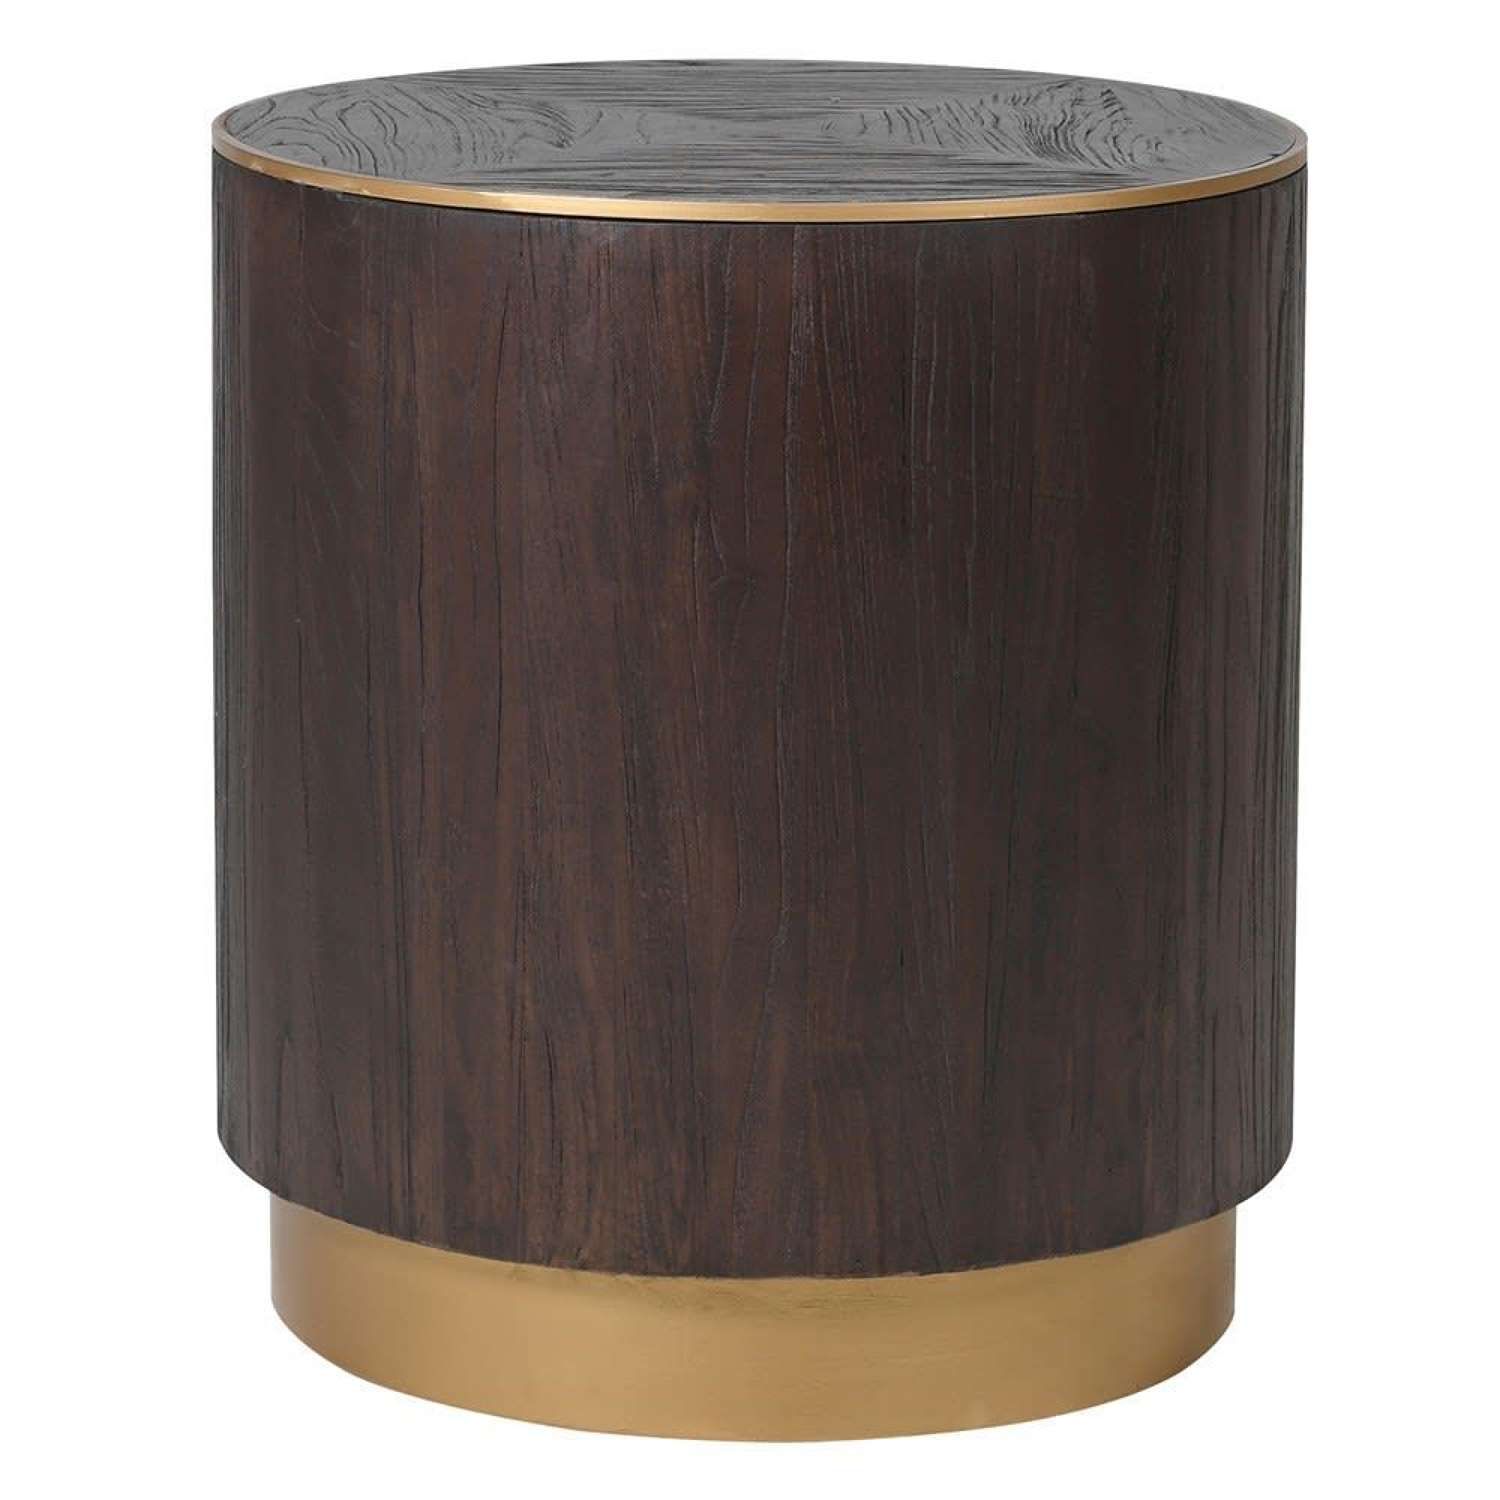 Brushed Elm and Copper Round Side Table